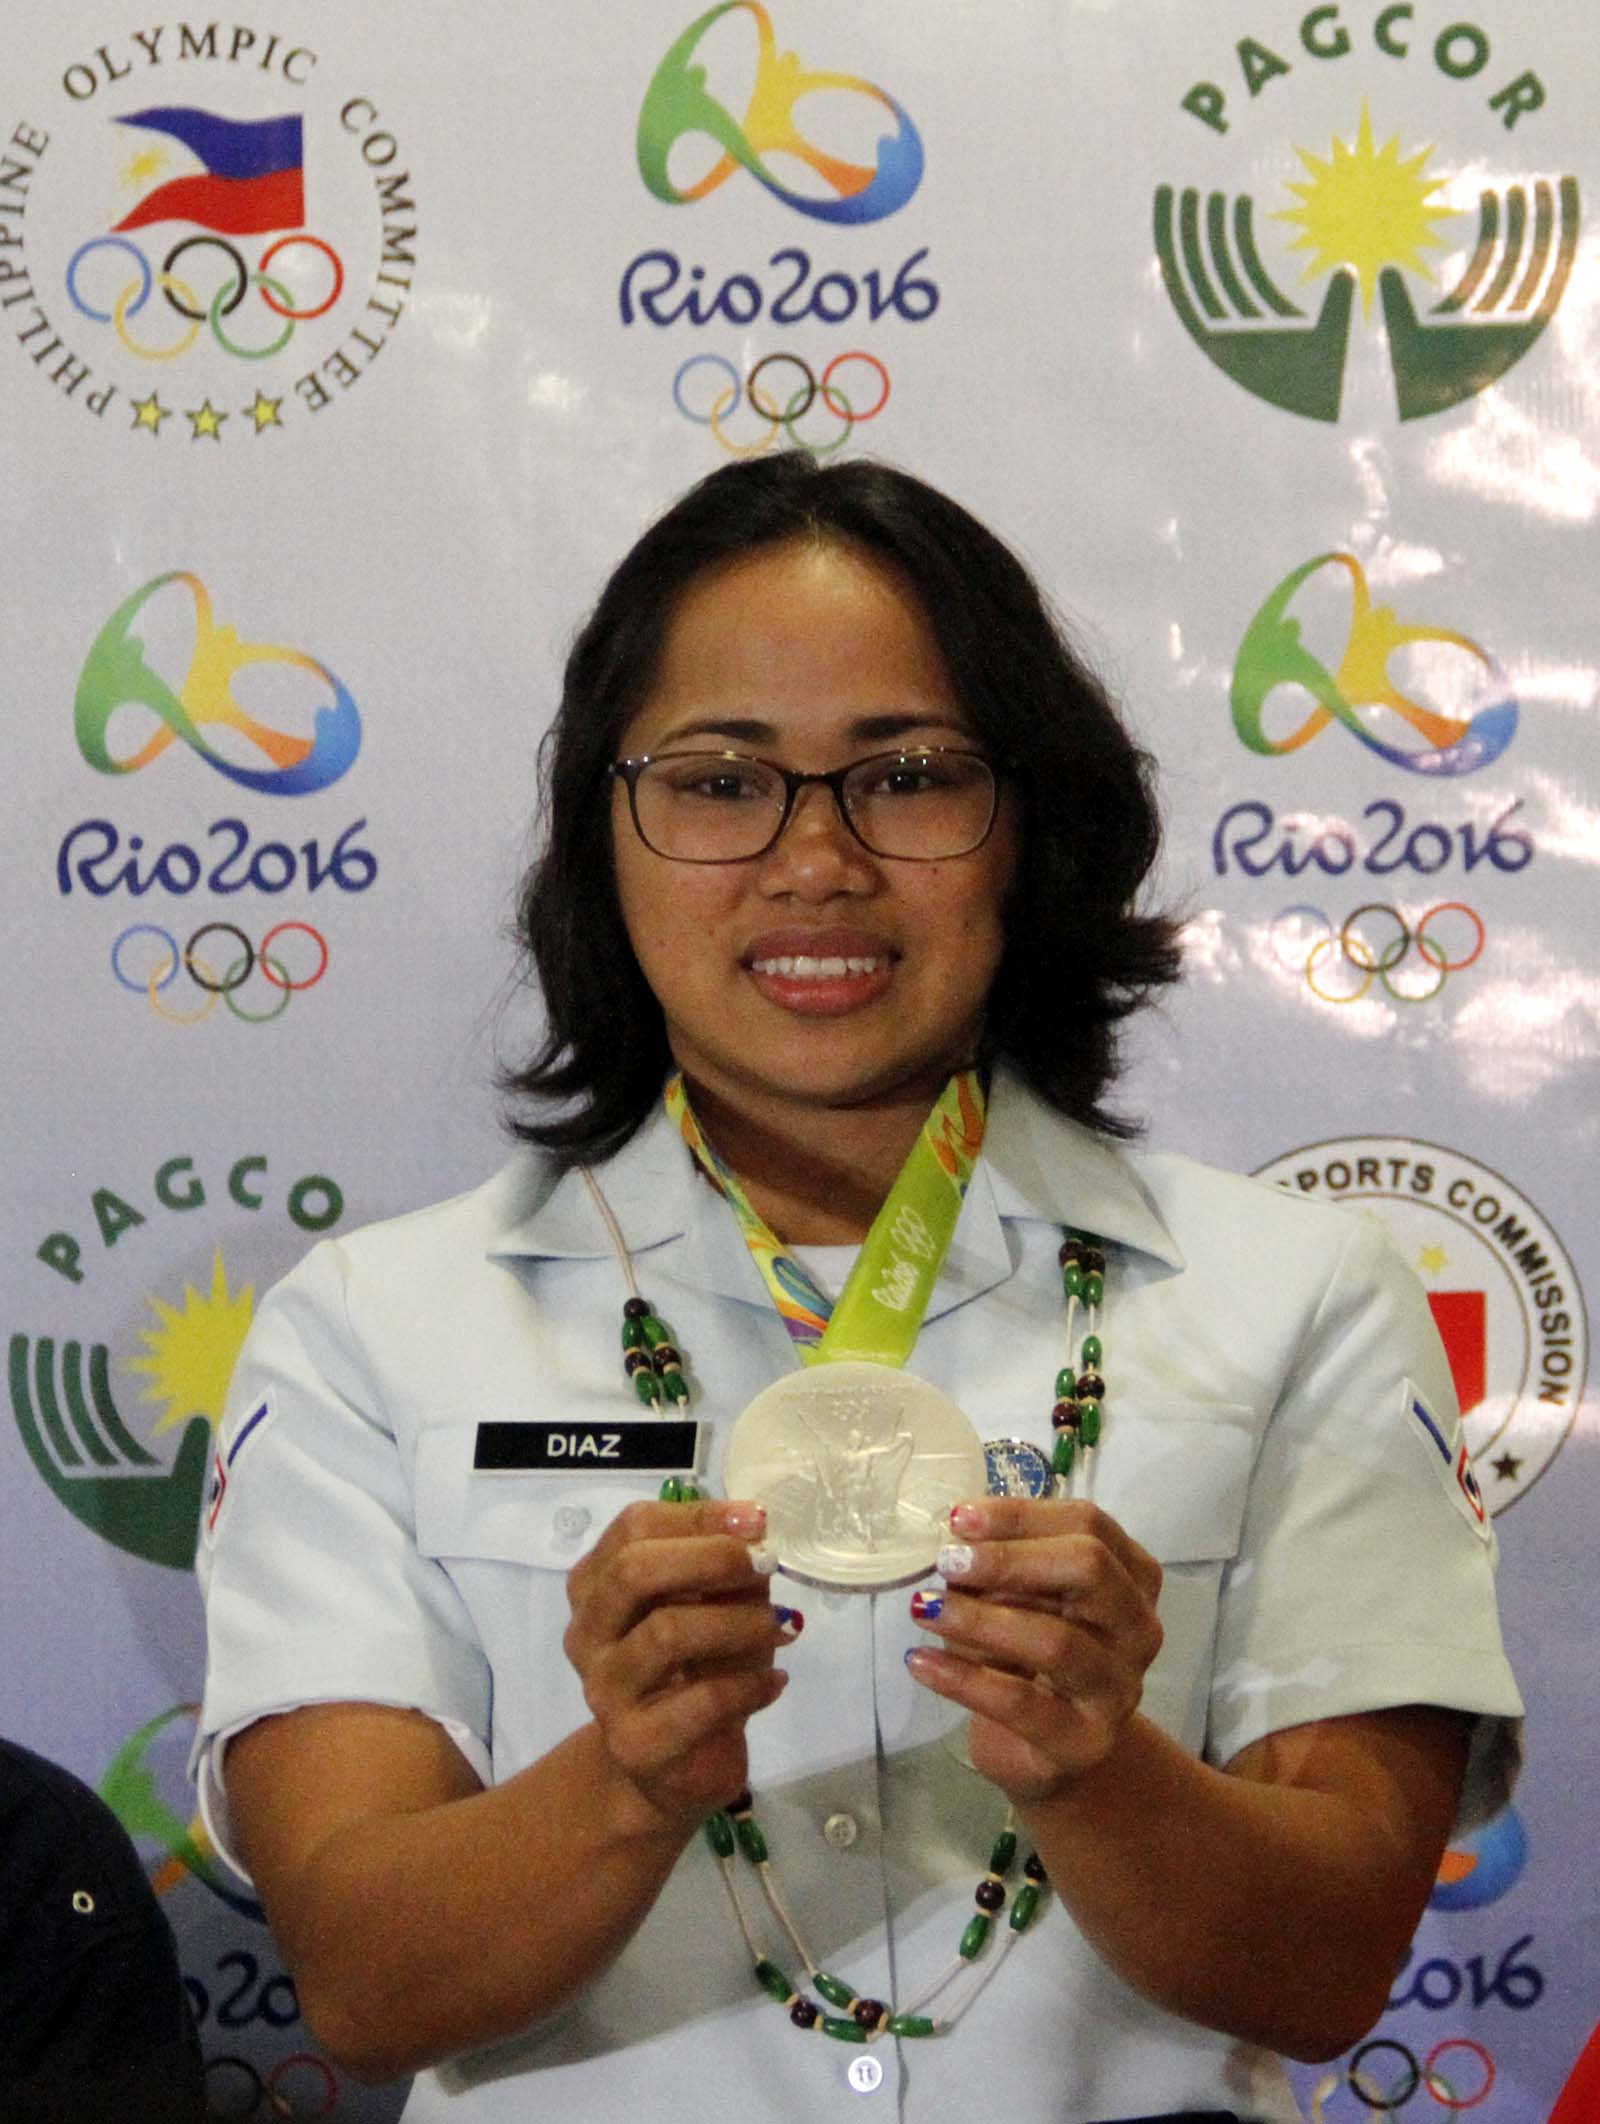 A beaming Olympian Silver Medalist Hidilyn Diaz displays her medal shortly upon her arrival at the Ninoy Aquino International Airport (NAIA) Terminal 3 in Pasay City from Rio de Janeiro, Brazil on Thursday afternoon. (PNA photo by Avito C. Dalan)